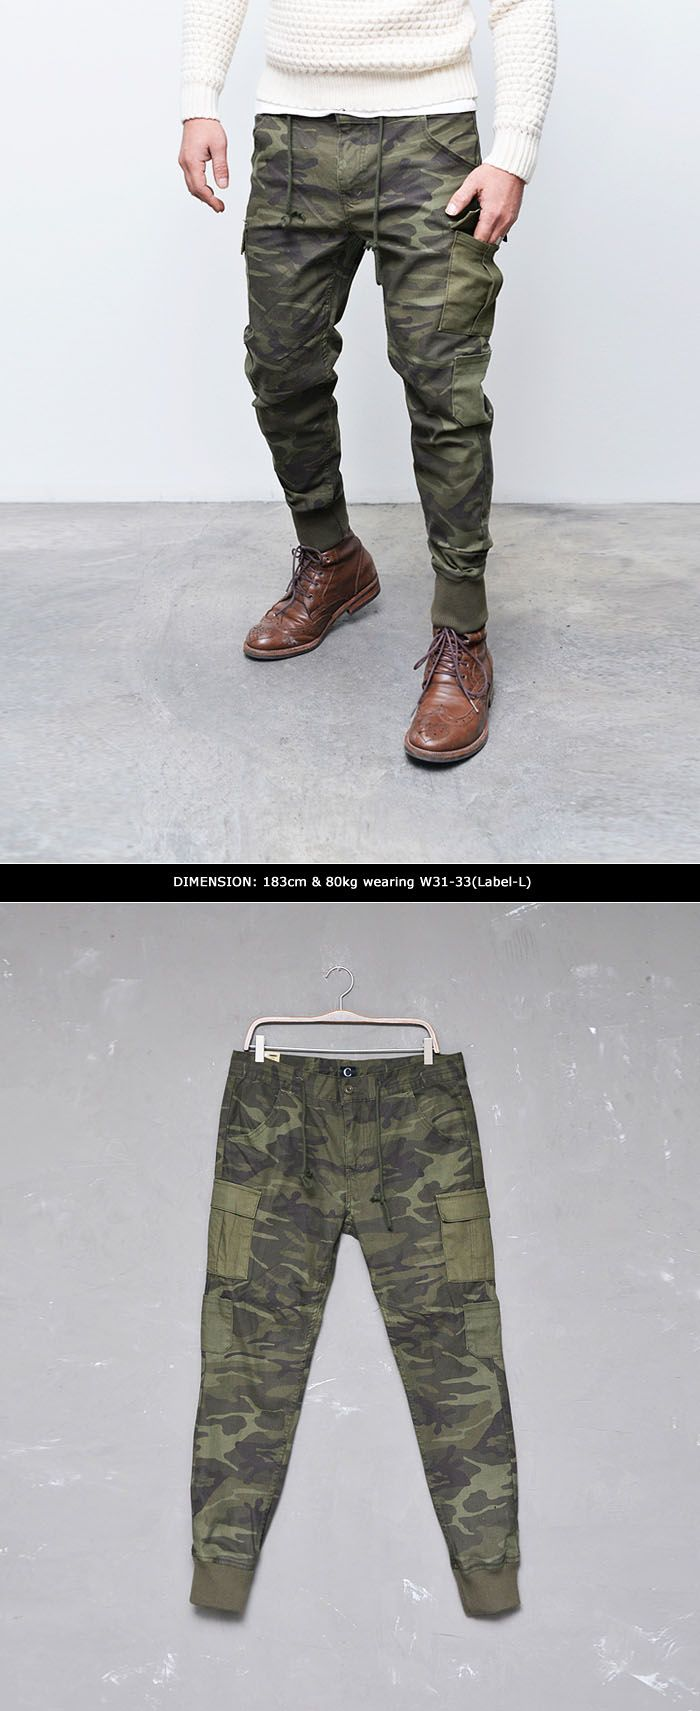 Bottoms :: Must-have Camouflage Cargo Drop Jogger-Pants 153 - Mens Fashion Clothing For An Attractive Guy Look